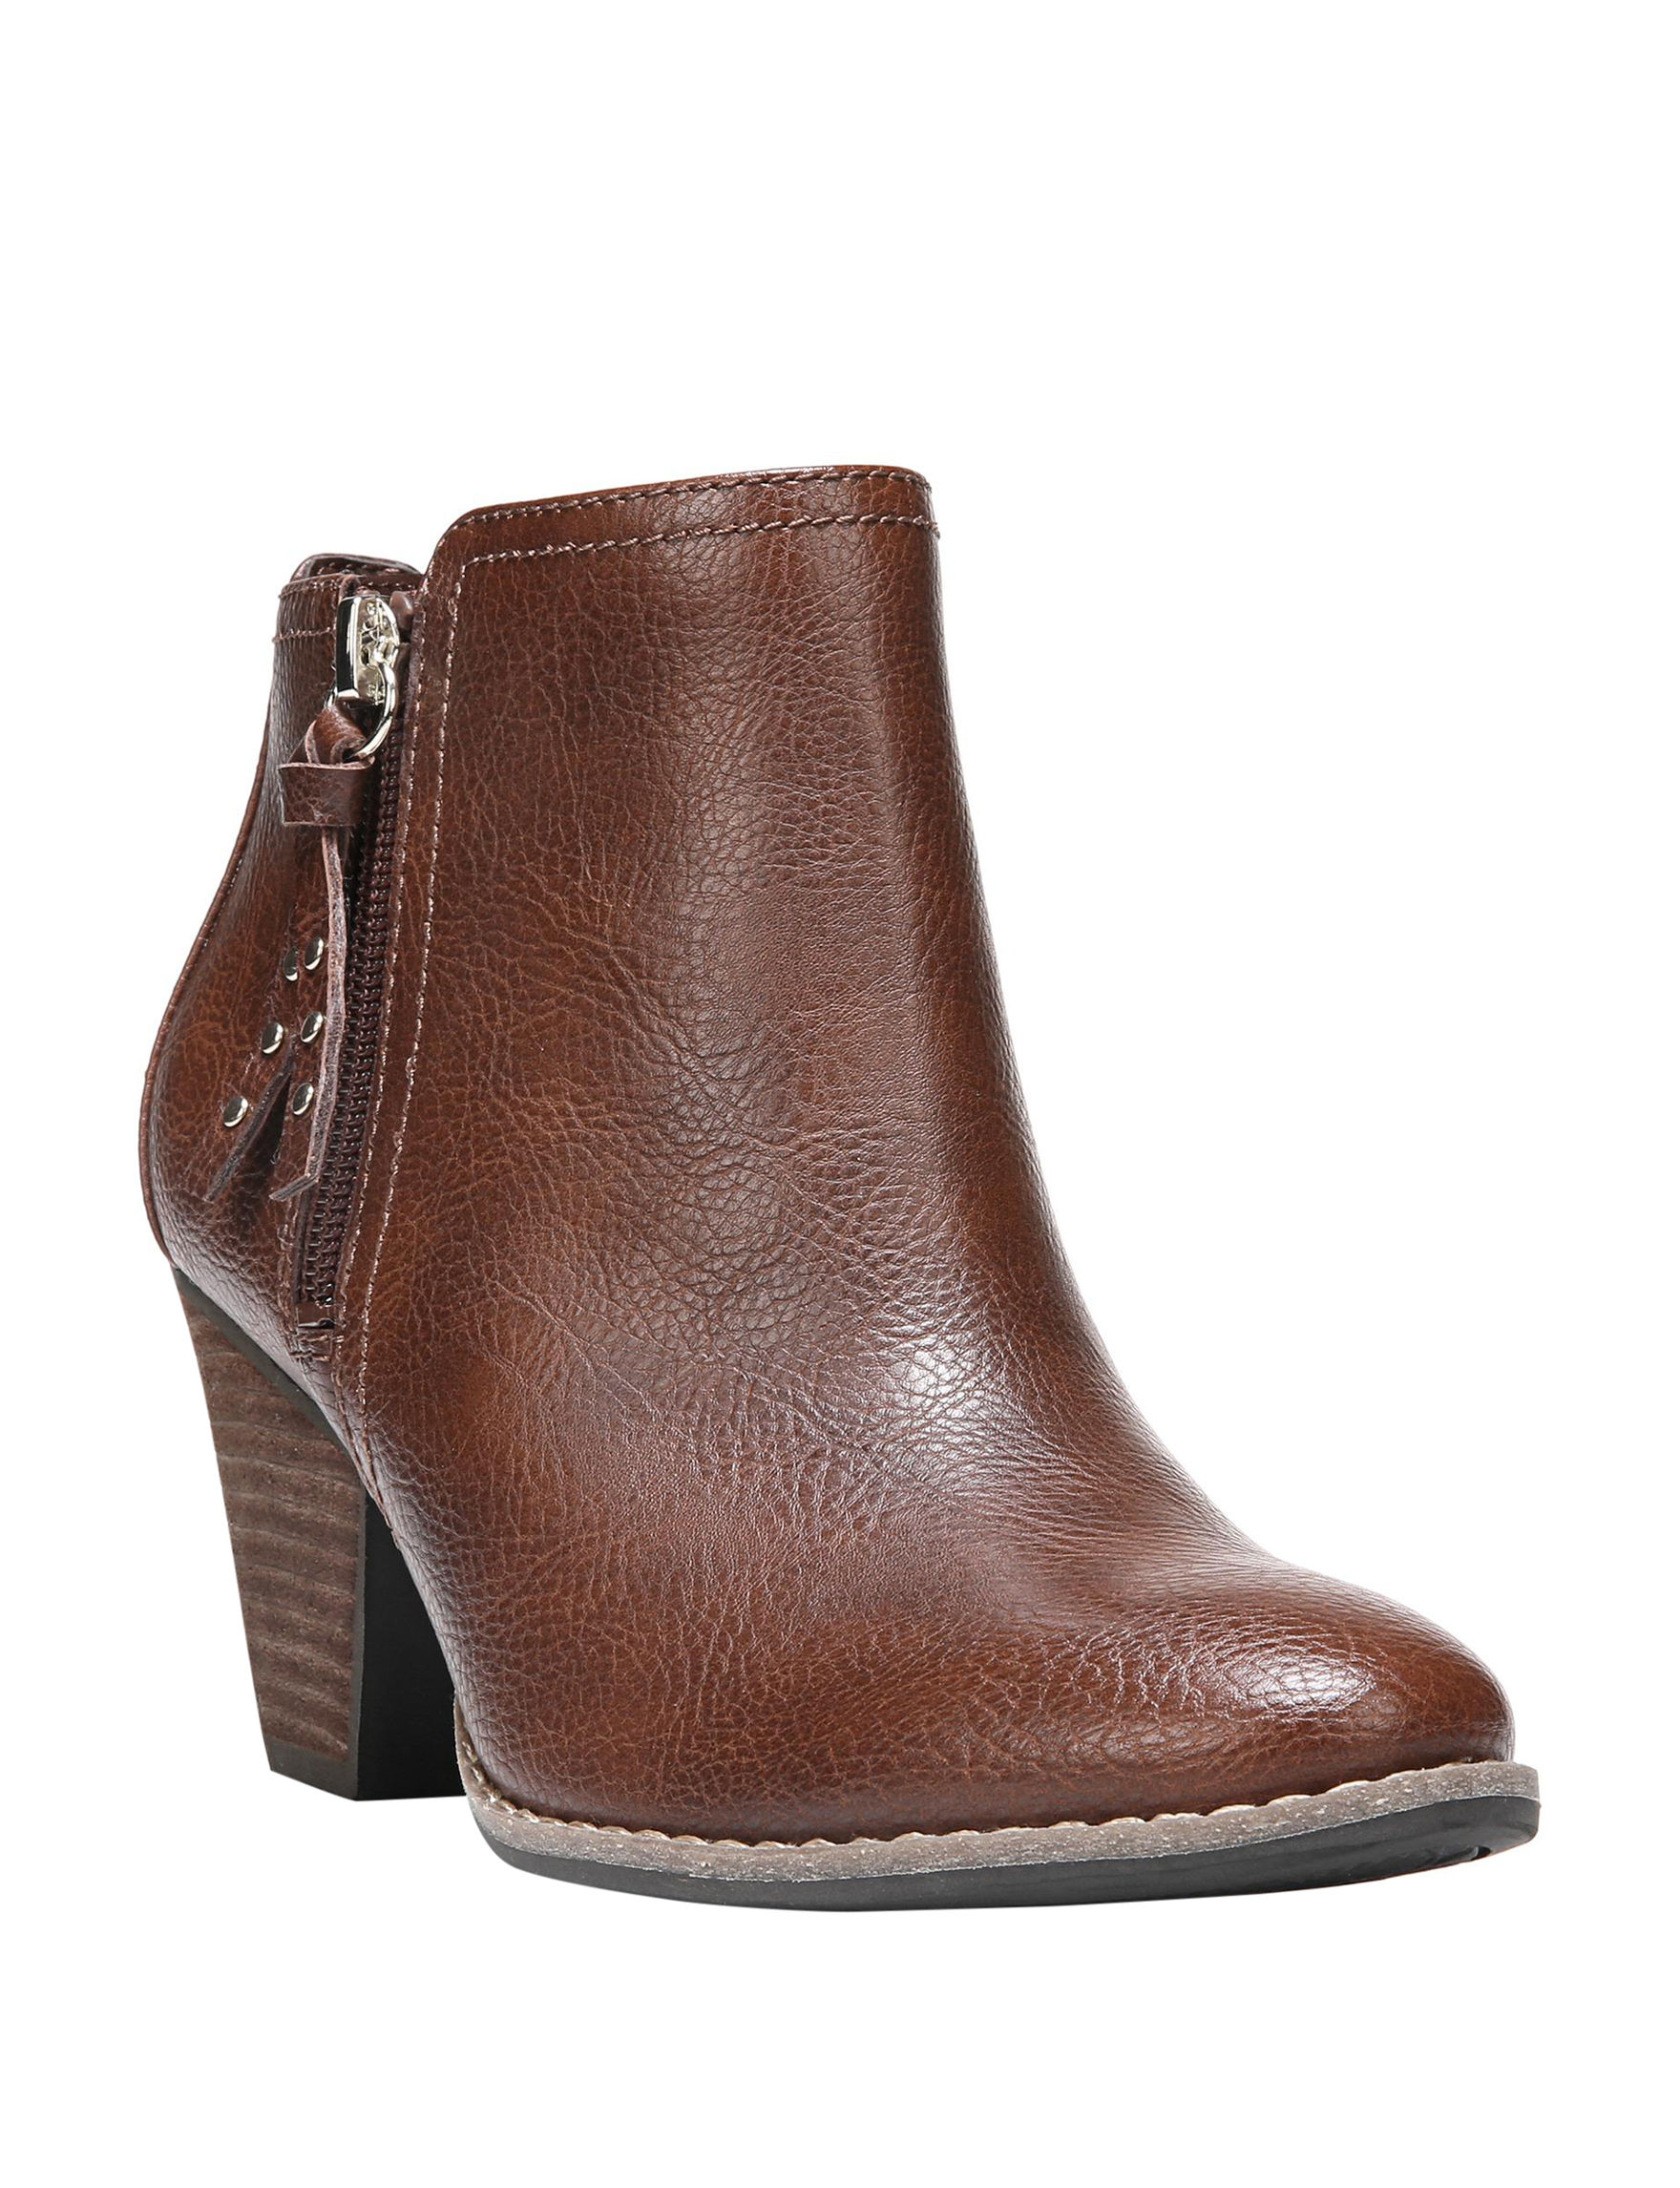 Dr. Scholl's Medium Brown Ankle Boots & Booties